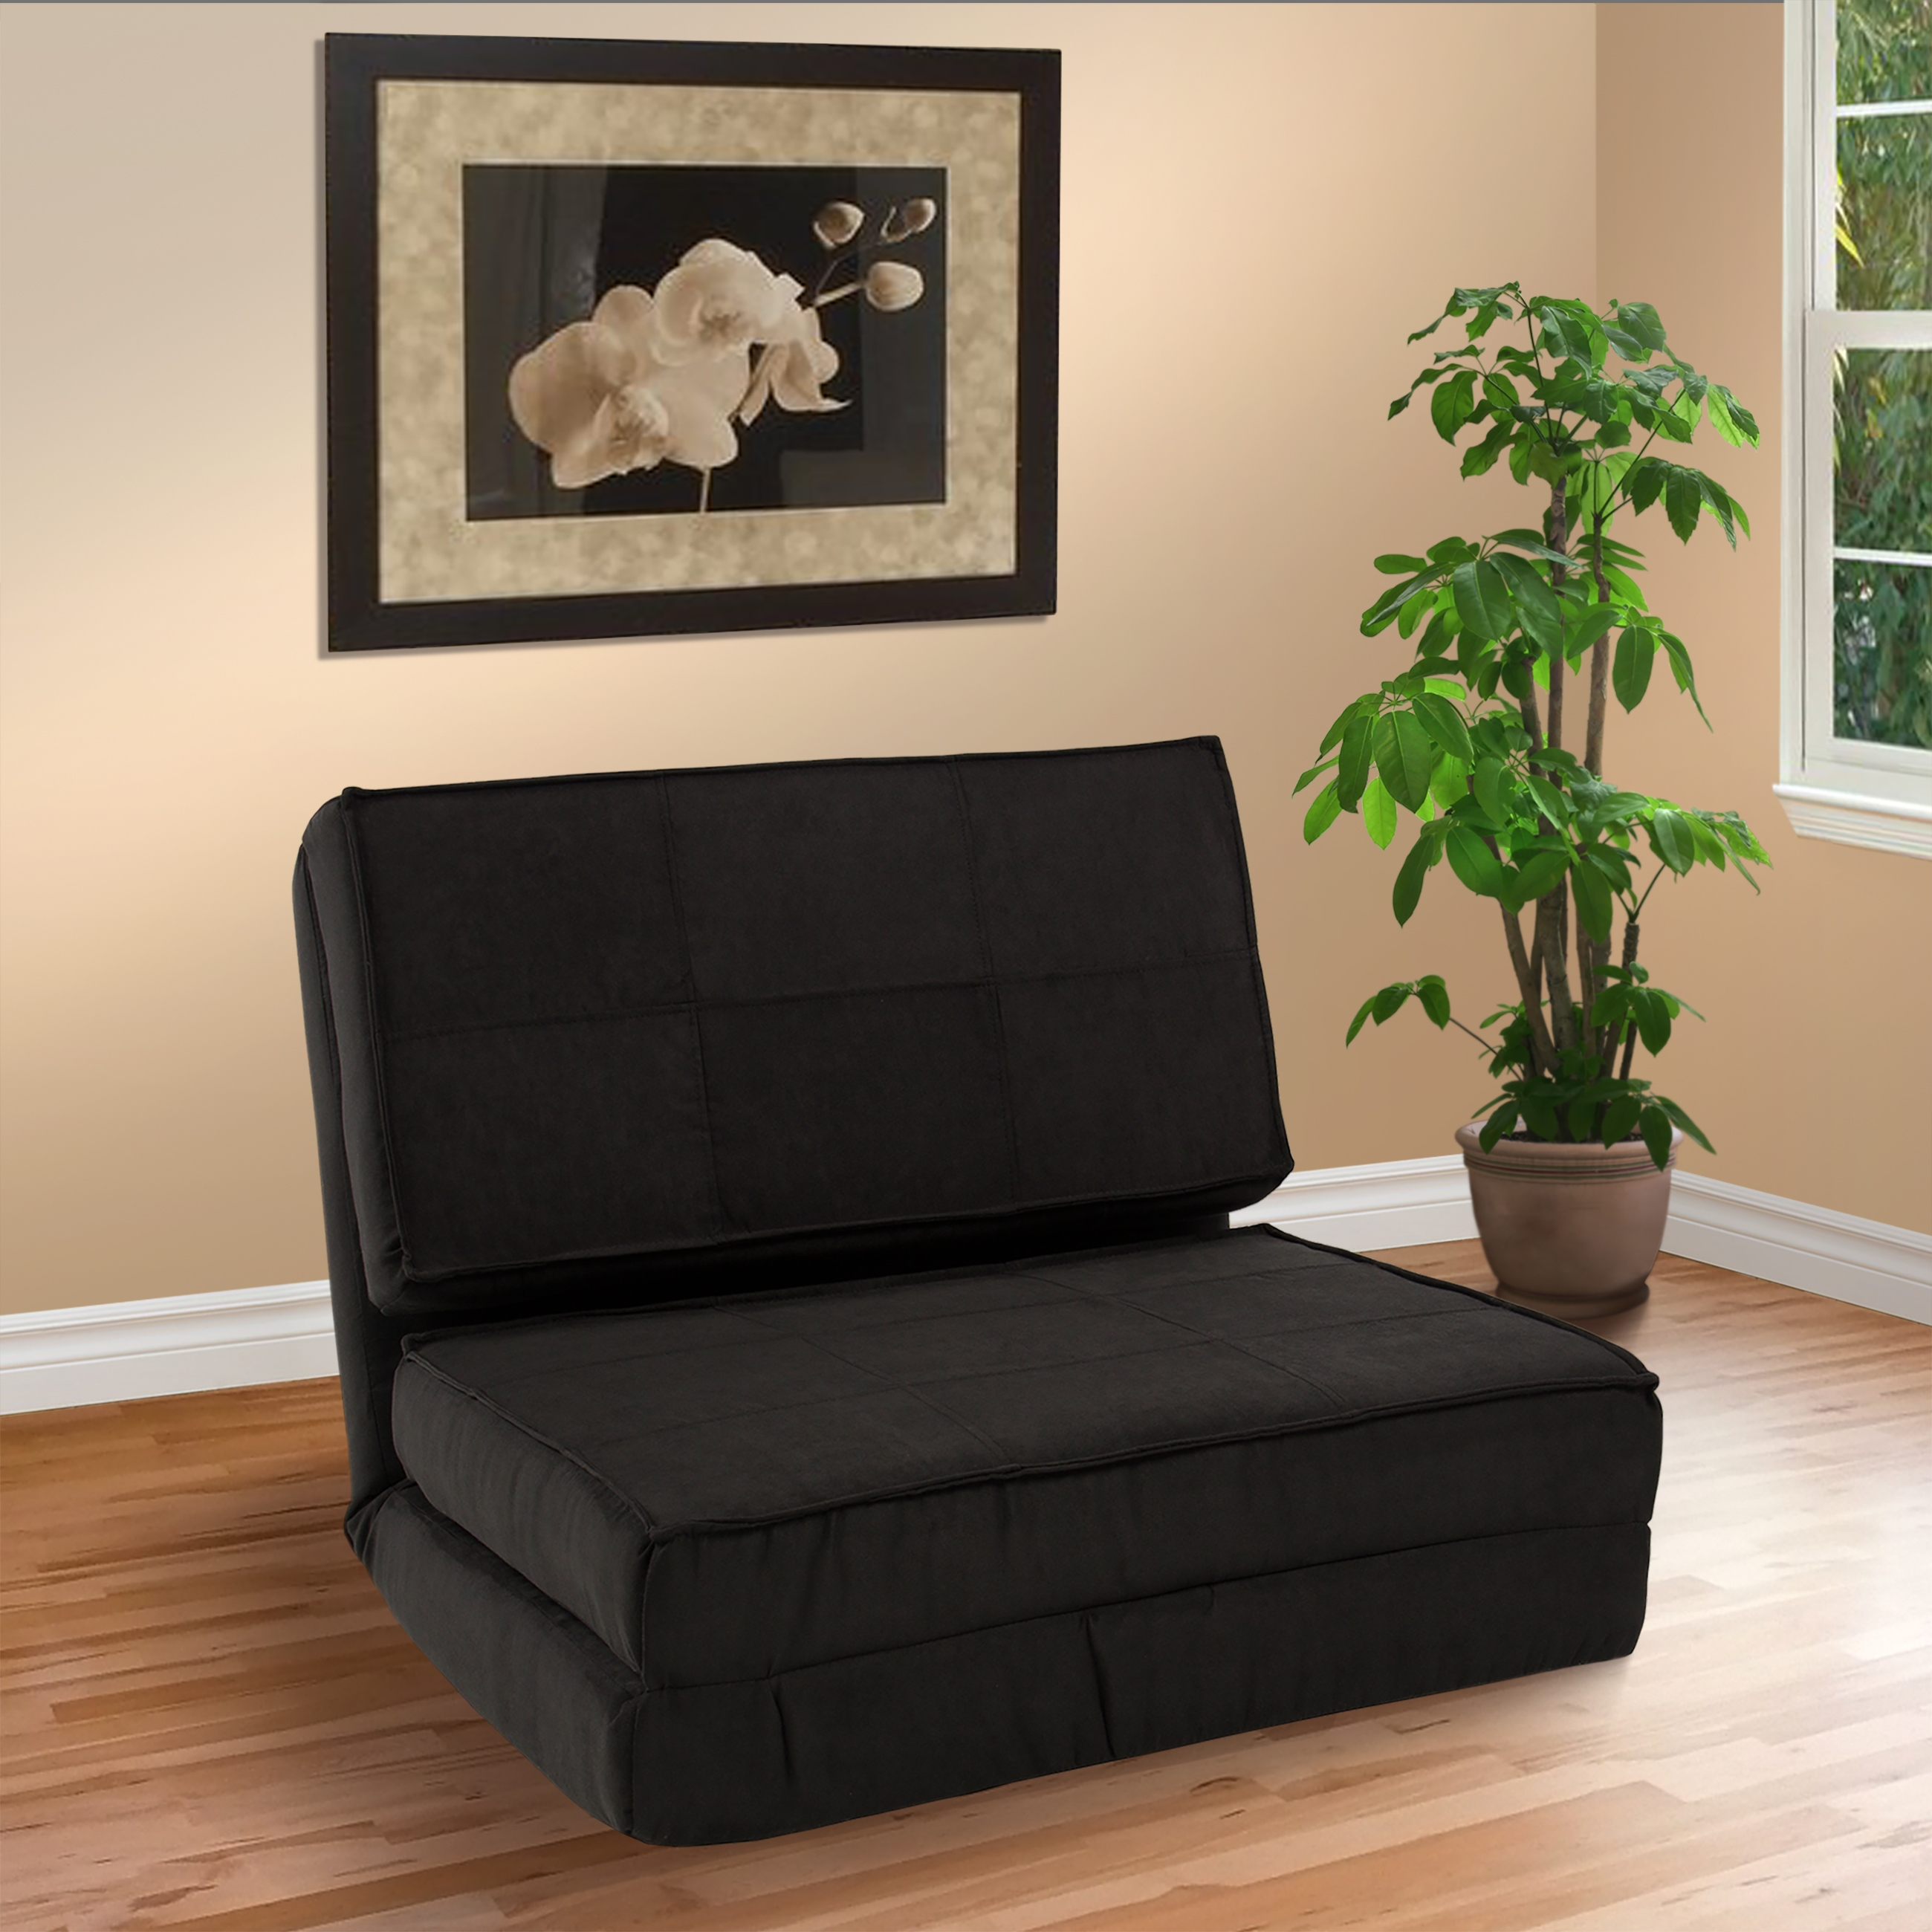 Fold Down Chair Flip Out Lounger Convertible Sleeper Bed Couch Throughout Convertible Sofa Chair Bed (Image 5 of 15)